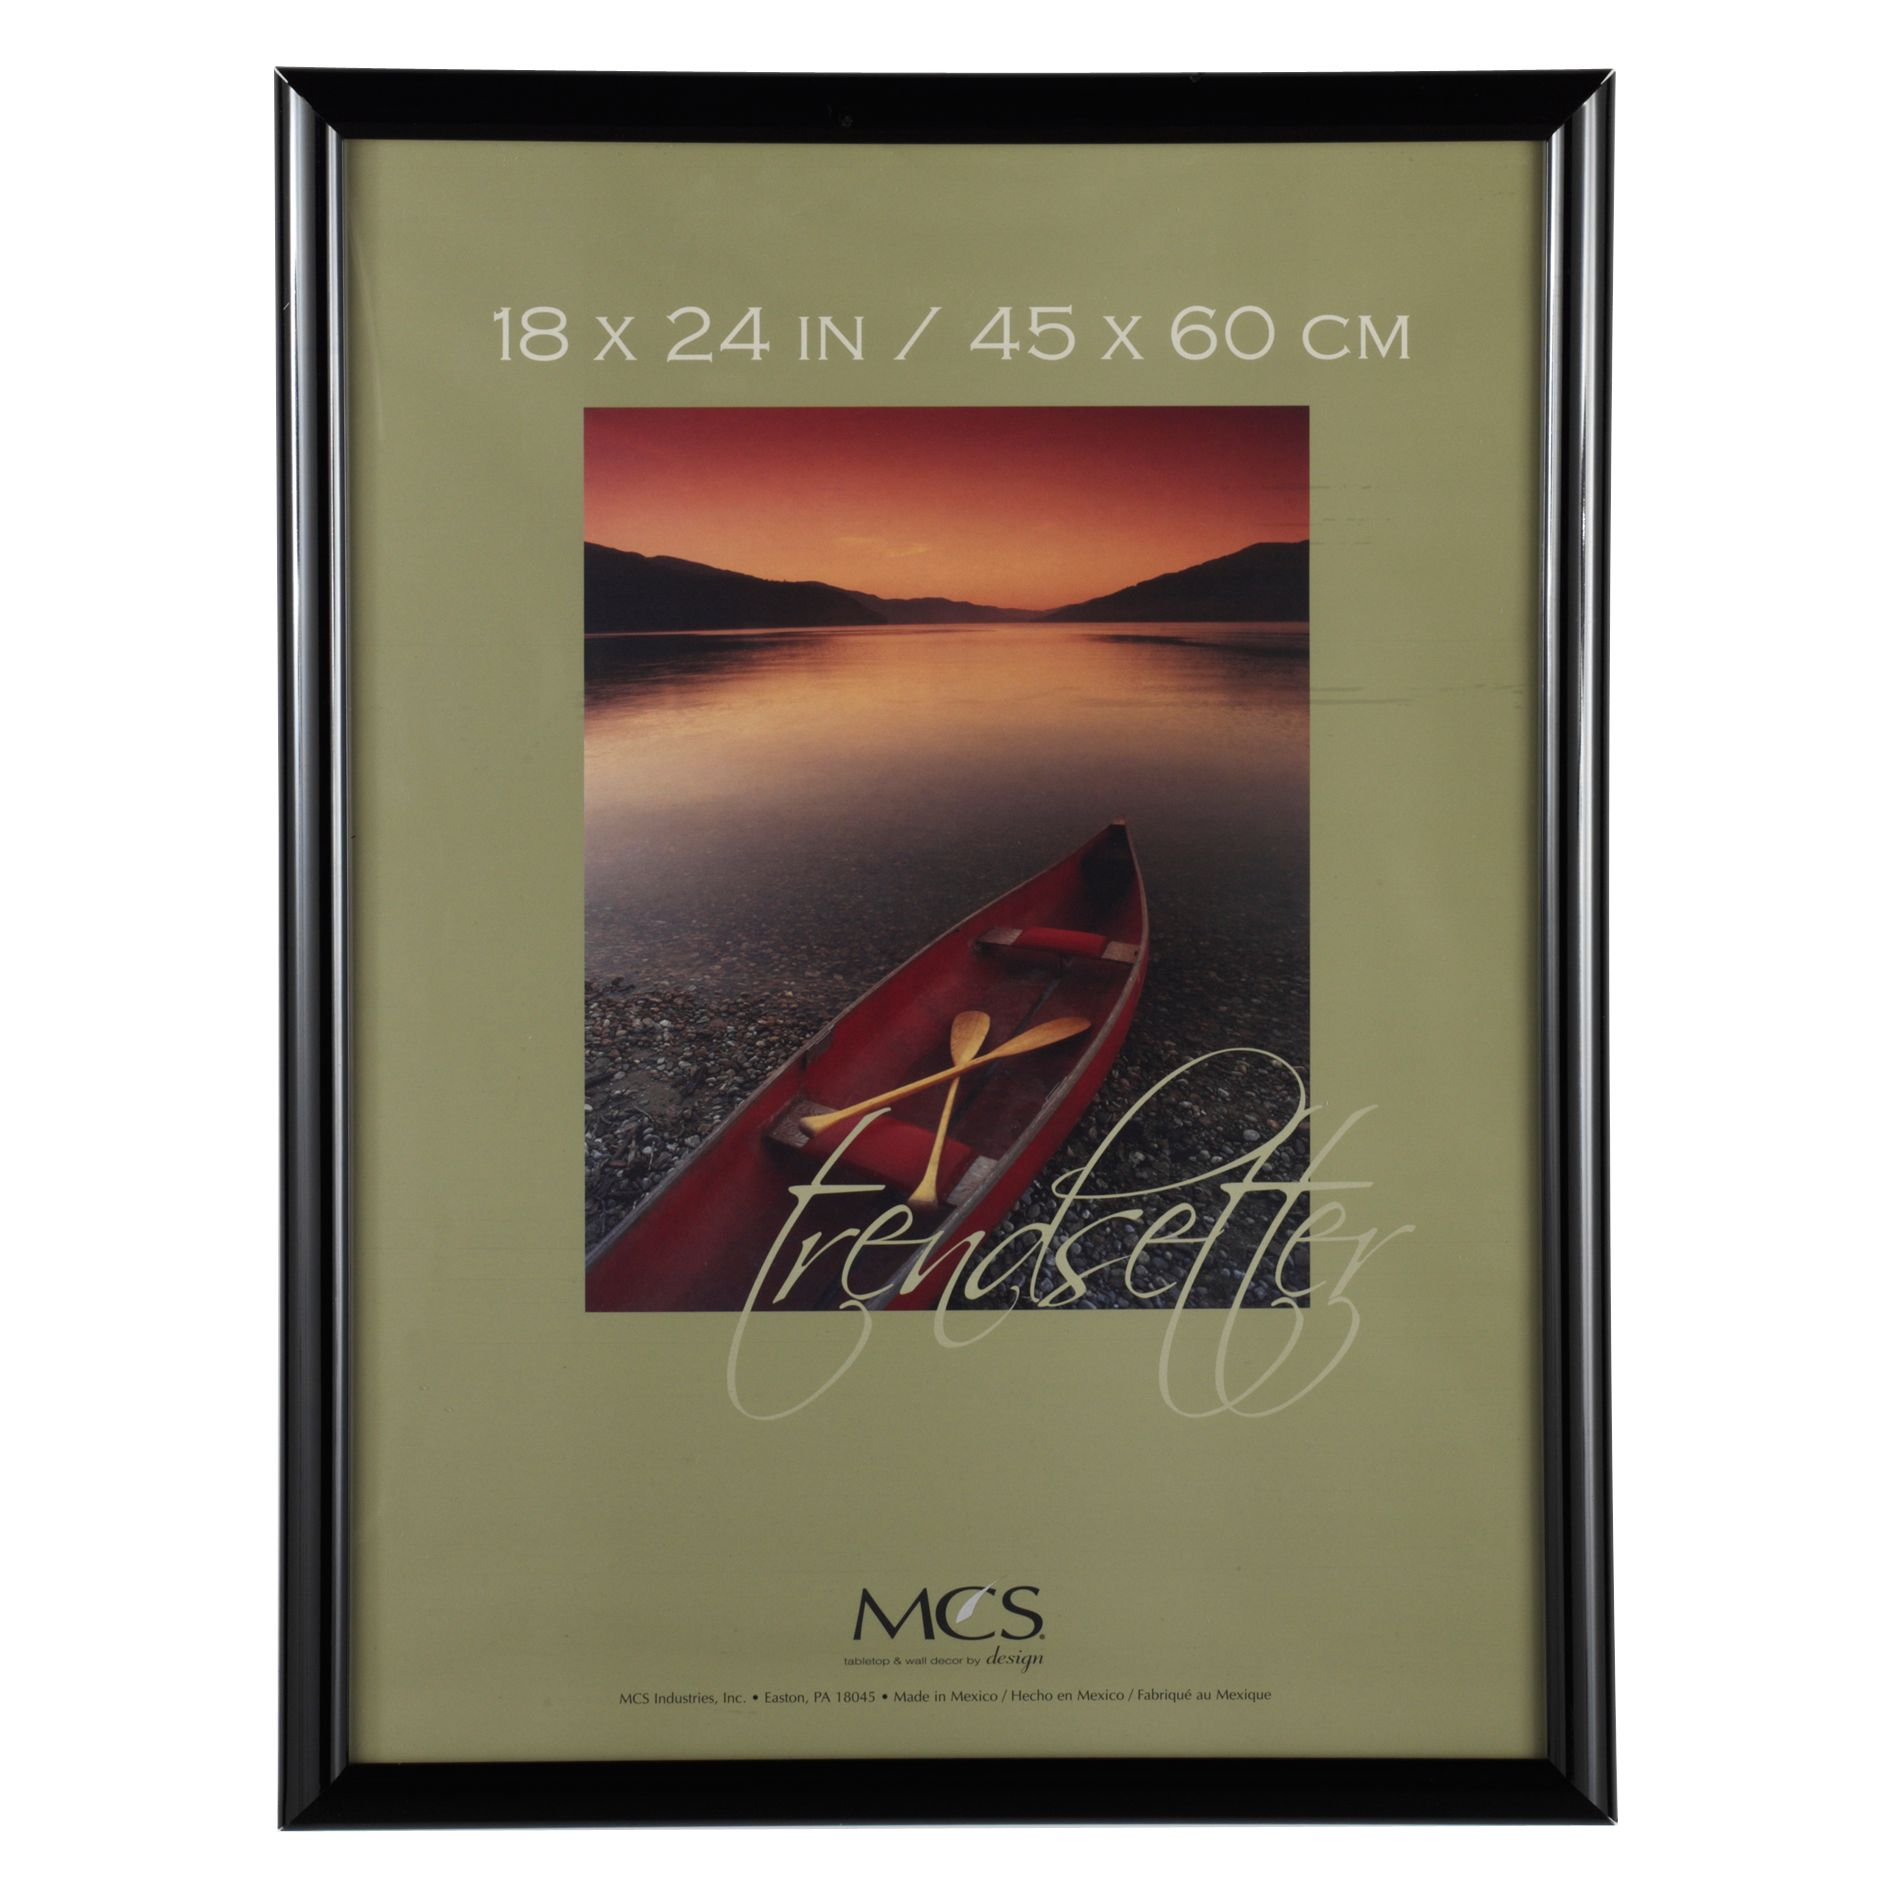 18x24 Poster Frame 18x24 Poster Frames Find It At Shopwiki